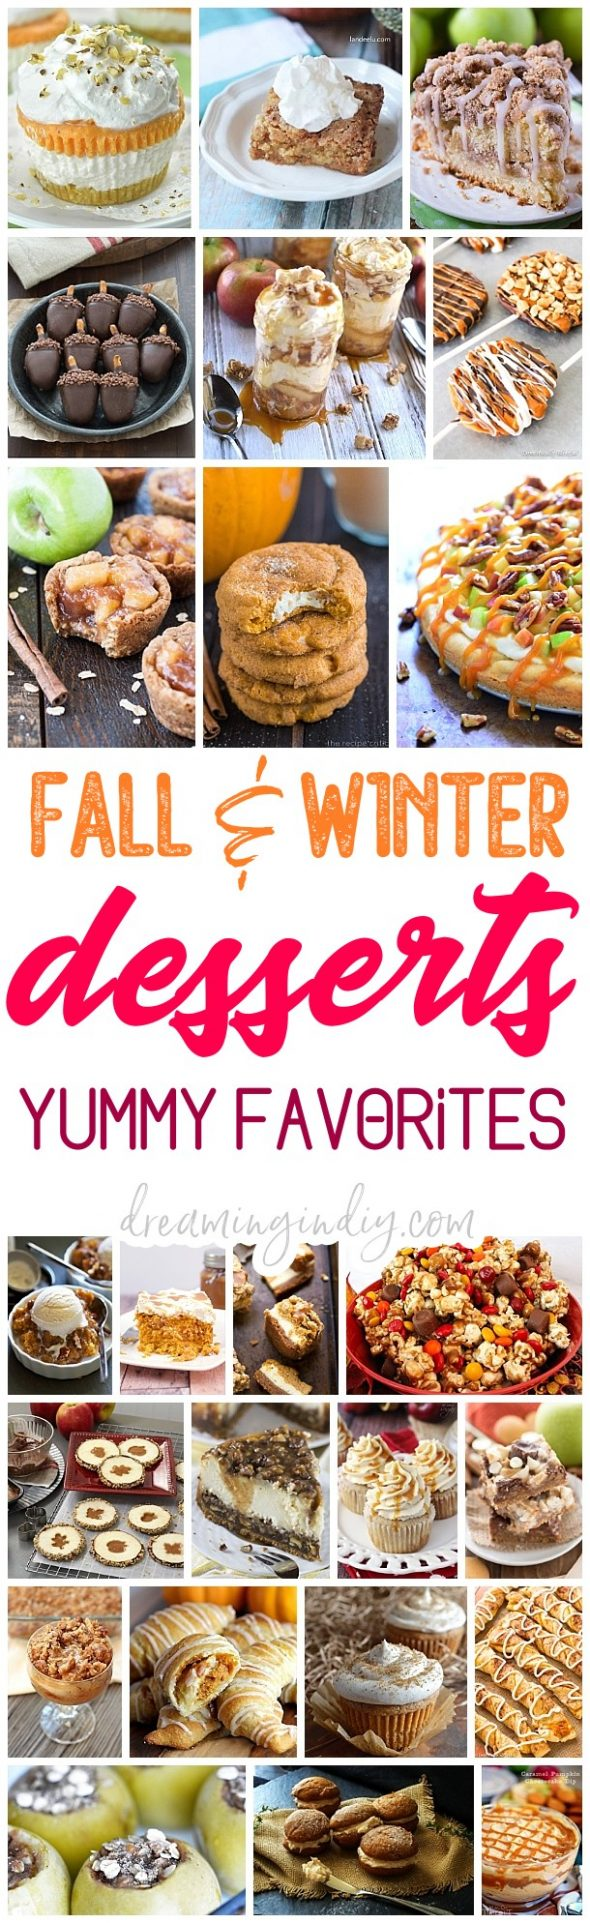 The BEST Easy Fall Harvest and Winter Desserts & Treats Recipes Perfect for Your Thanksgiving Dessert Table and Christmas Holiday Party Trays Pumpkin Apple Dreaming in DIY #falldesserts #winterdesserts #dessert